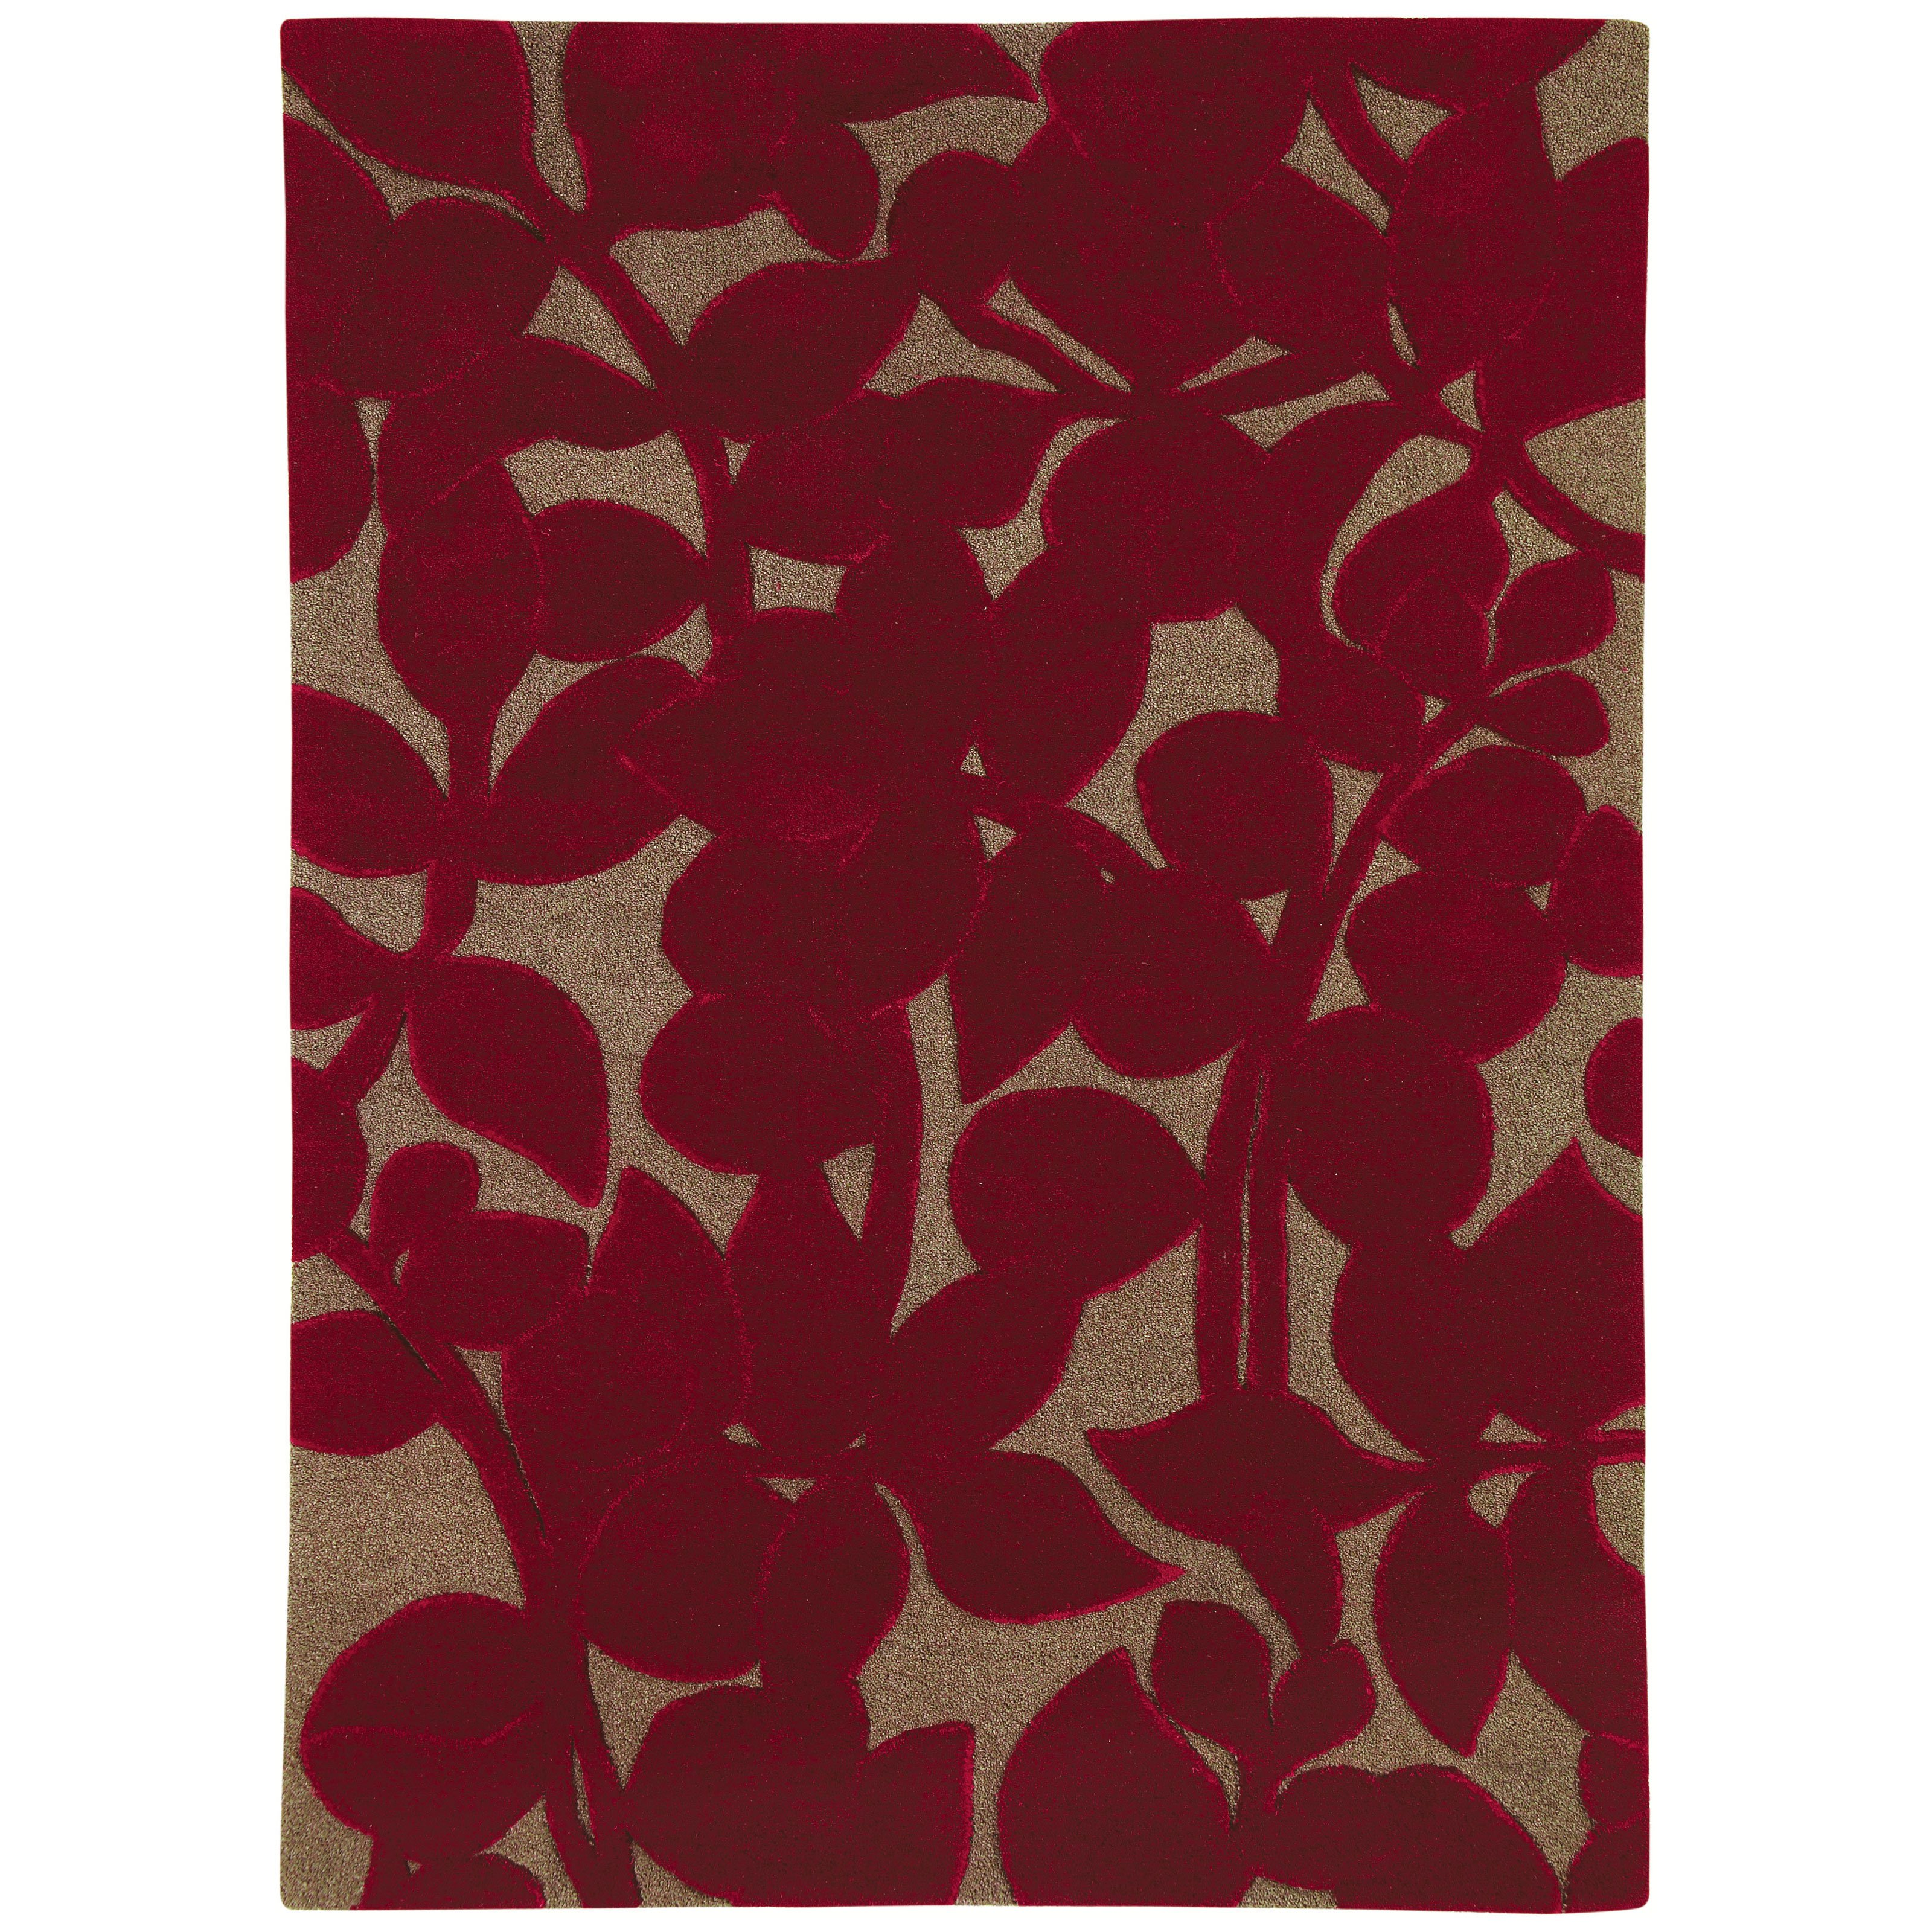 Dynamic Rugs Allure Flora 1904 Area Rug - Rich Red